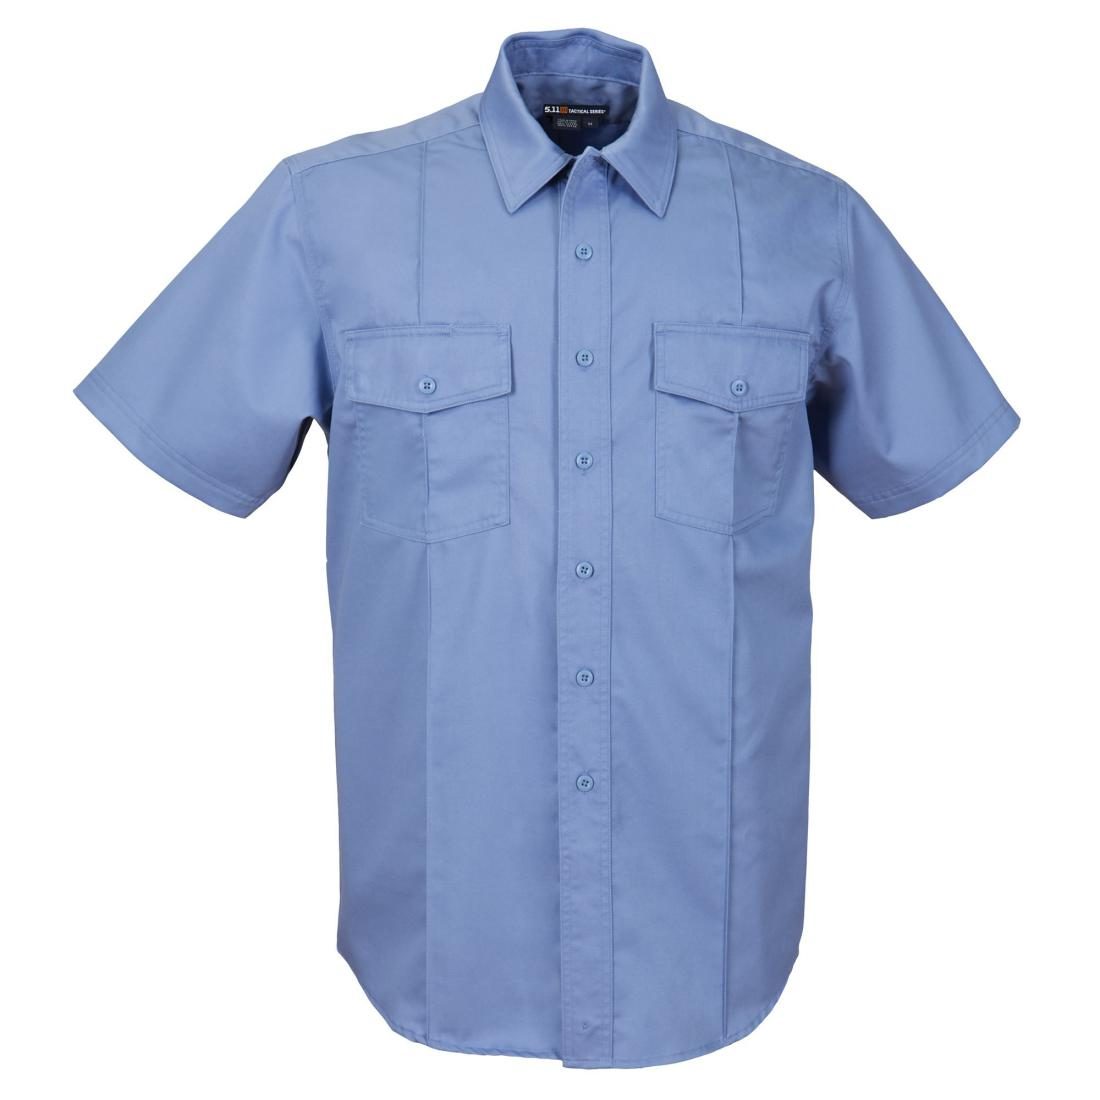 5.11 Tactical 46122 Men Station Non-NFPA Class-A Short Sleeve Shirt Fire Med Blue